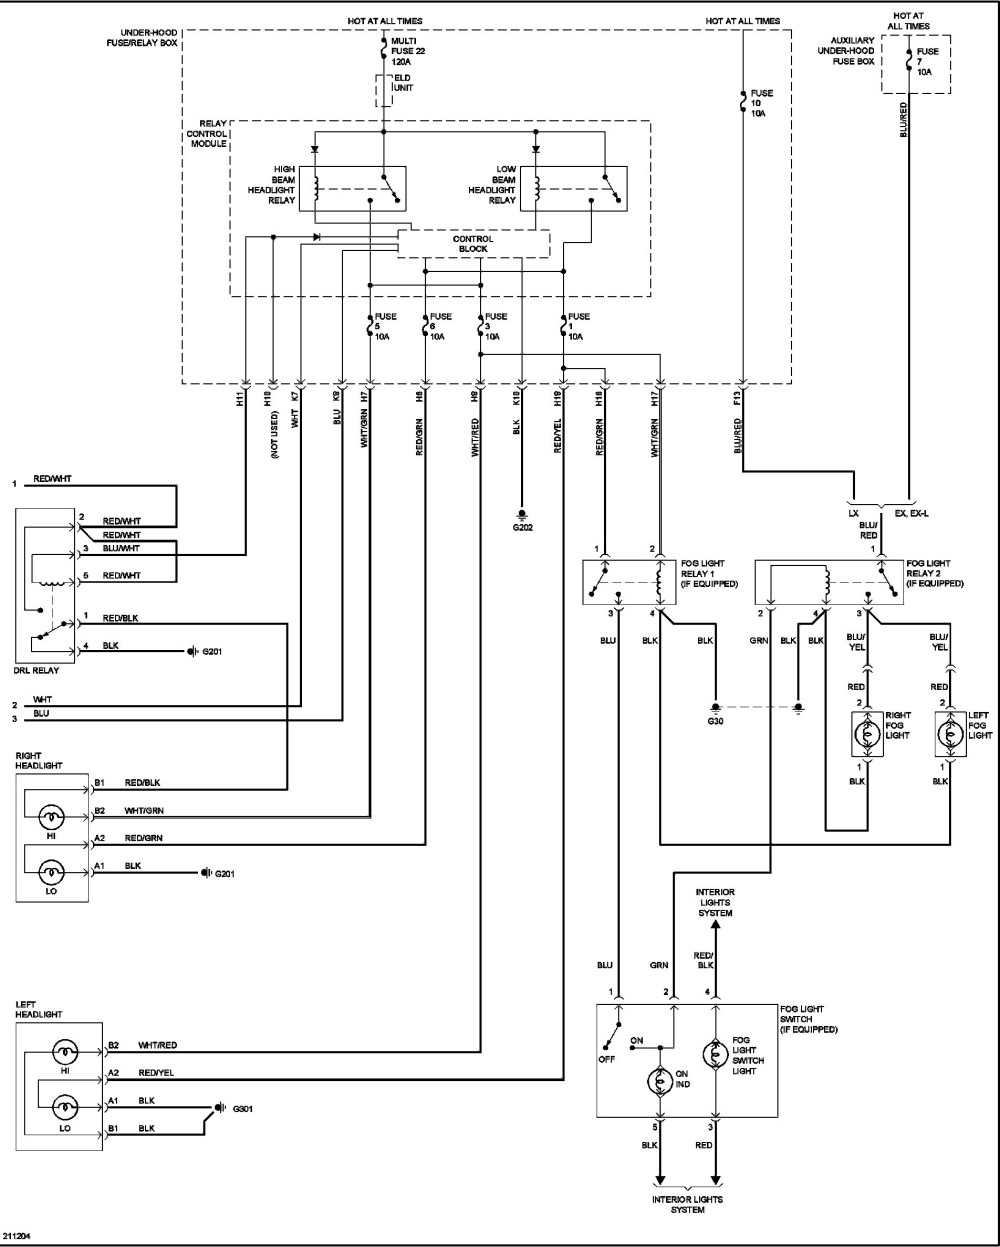 medium resolution of honda headlight wiring diagram wiring diagrams 2008 honda civic headlight wiring diagram 2005 honda civic headlight